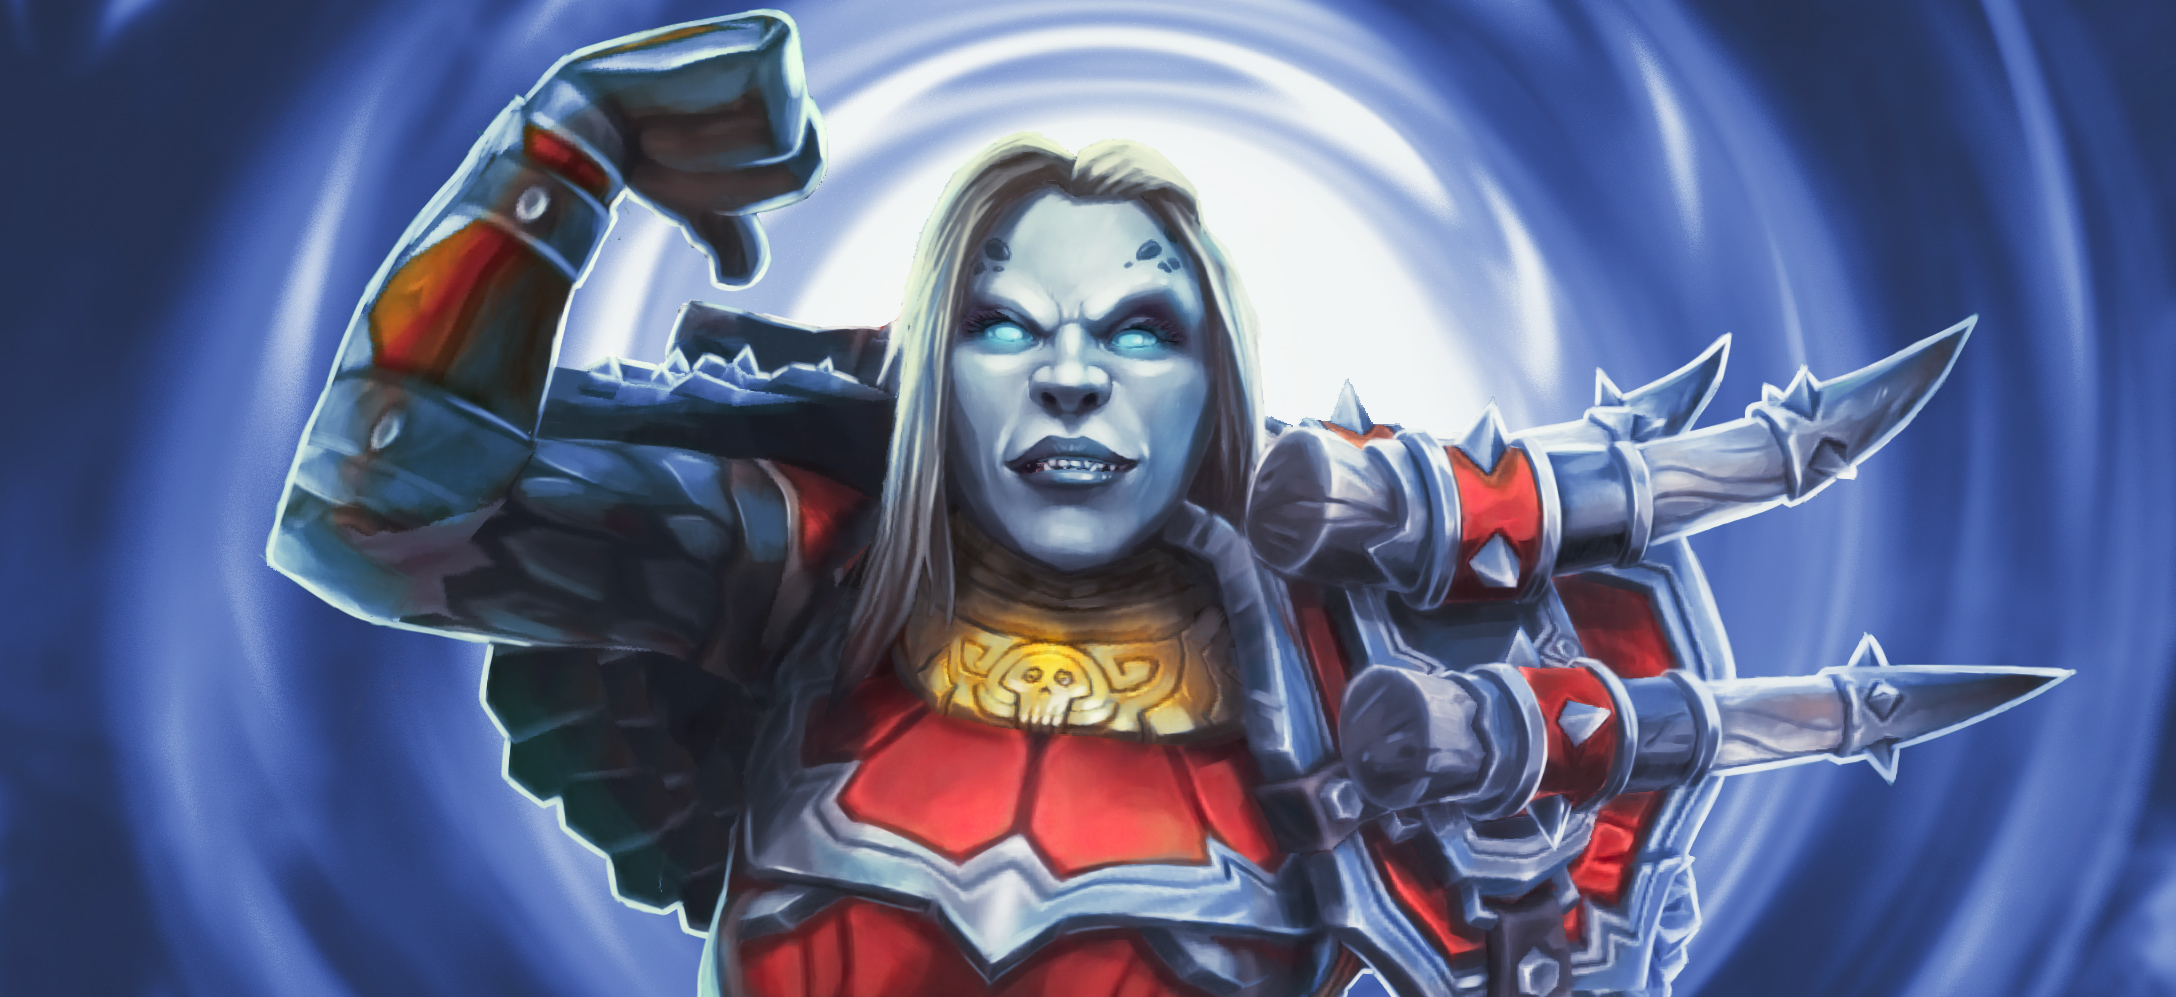 battle-for-azeroth-download-available-firestorm